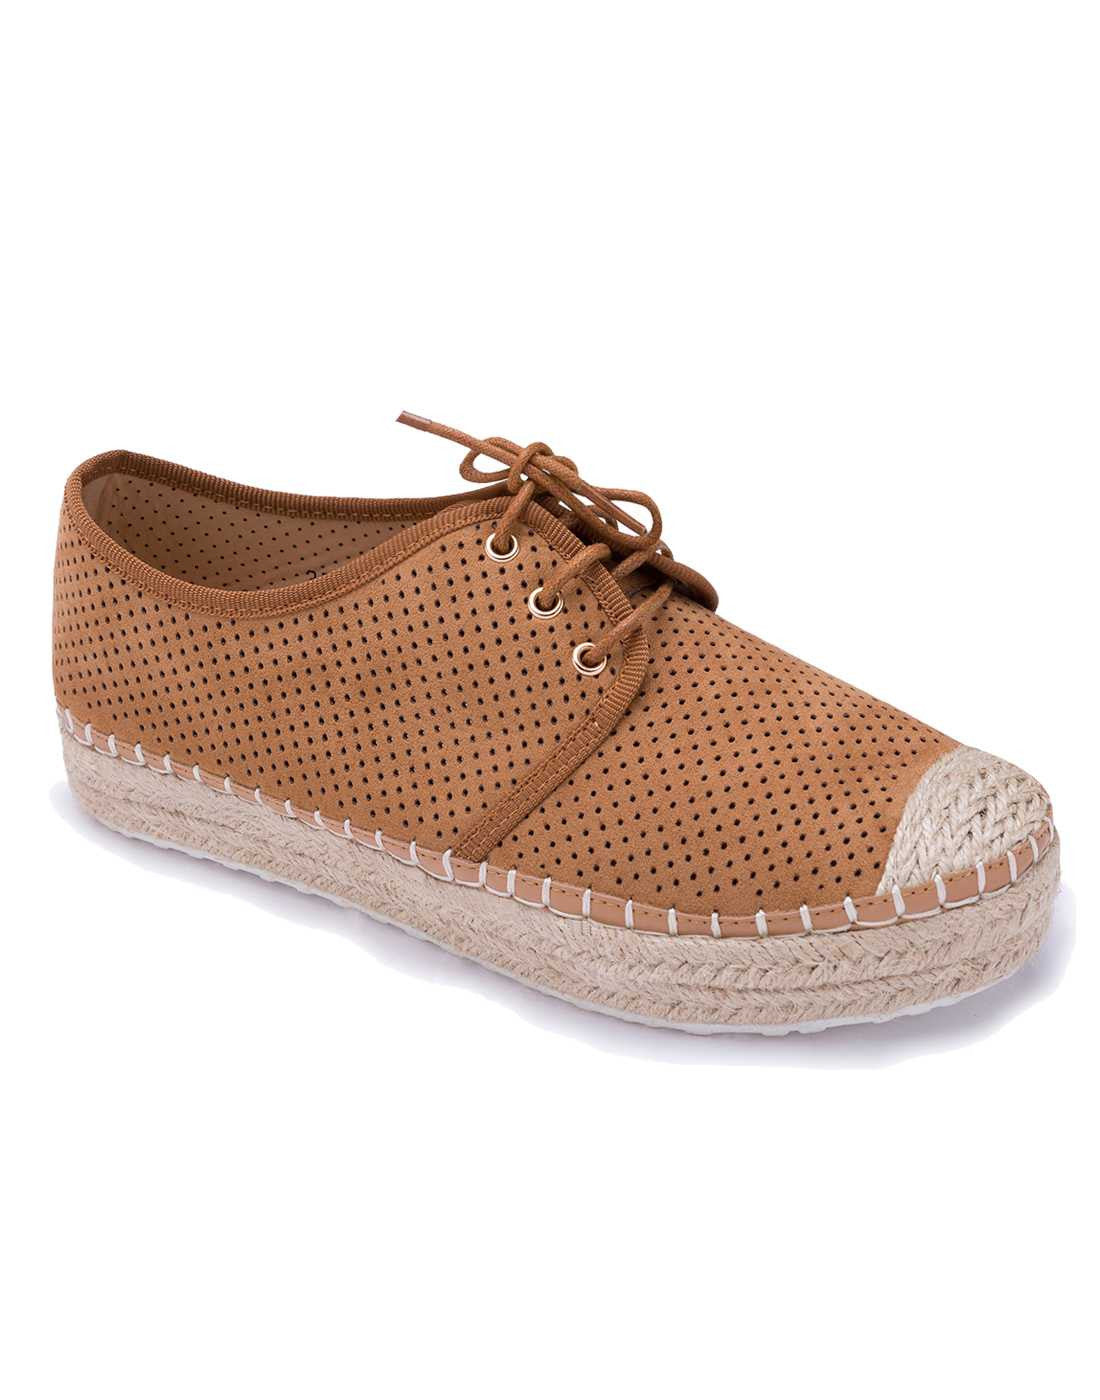 Brown Lace Up Platform Espadrilles